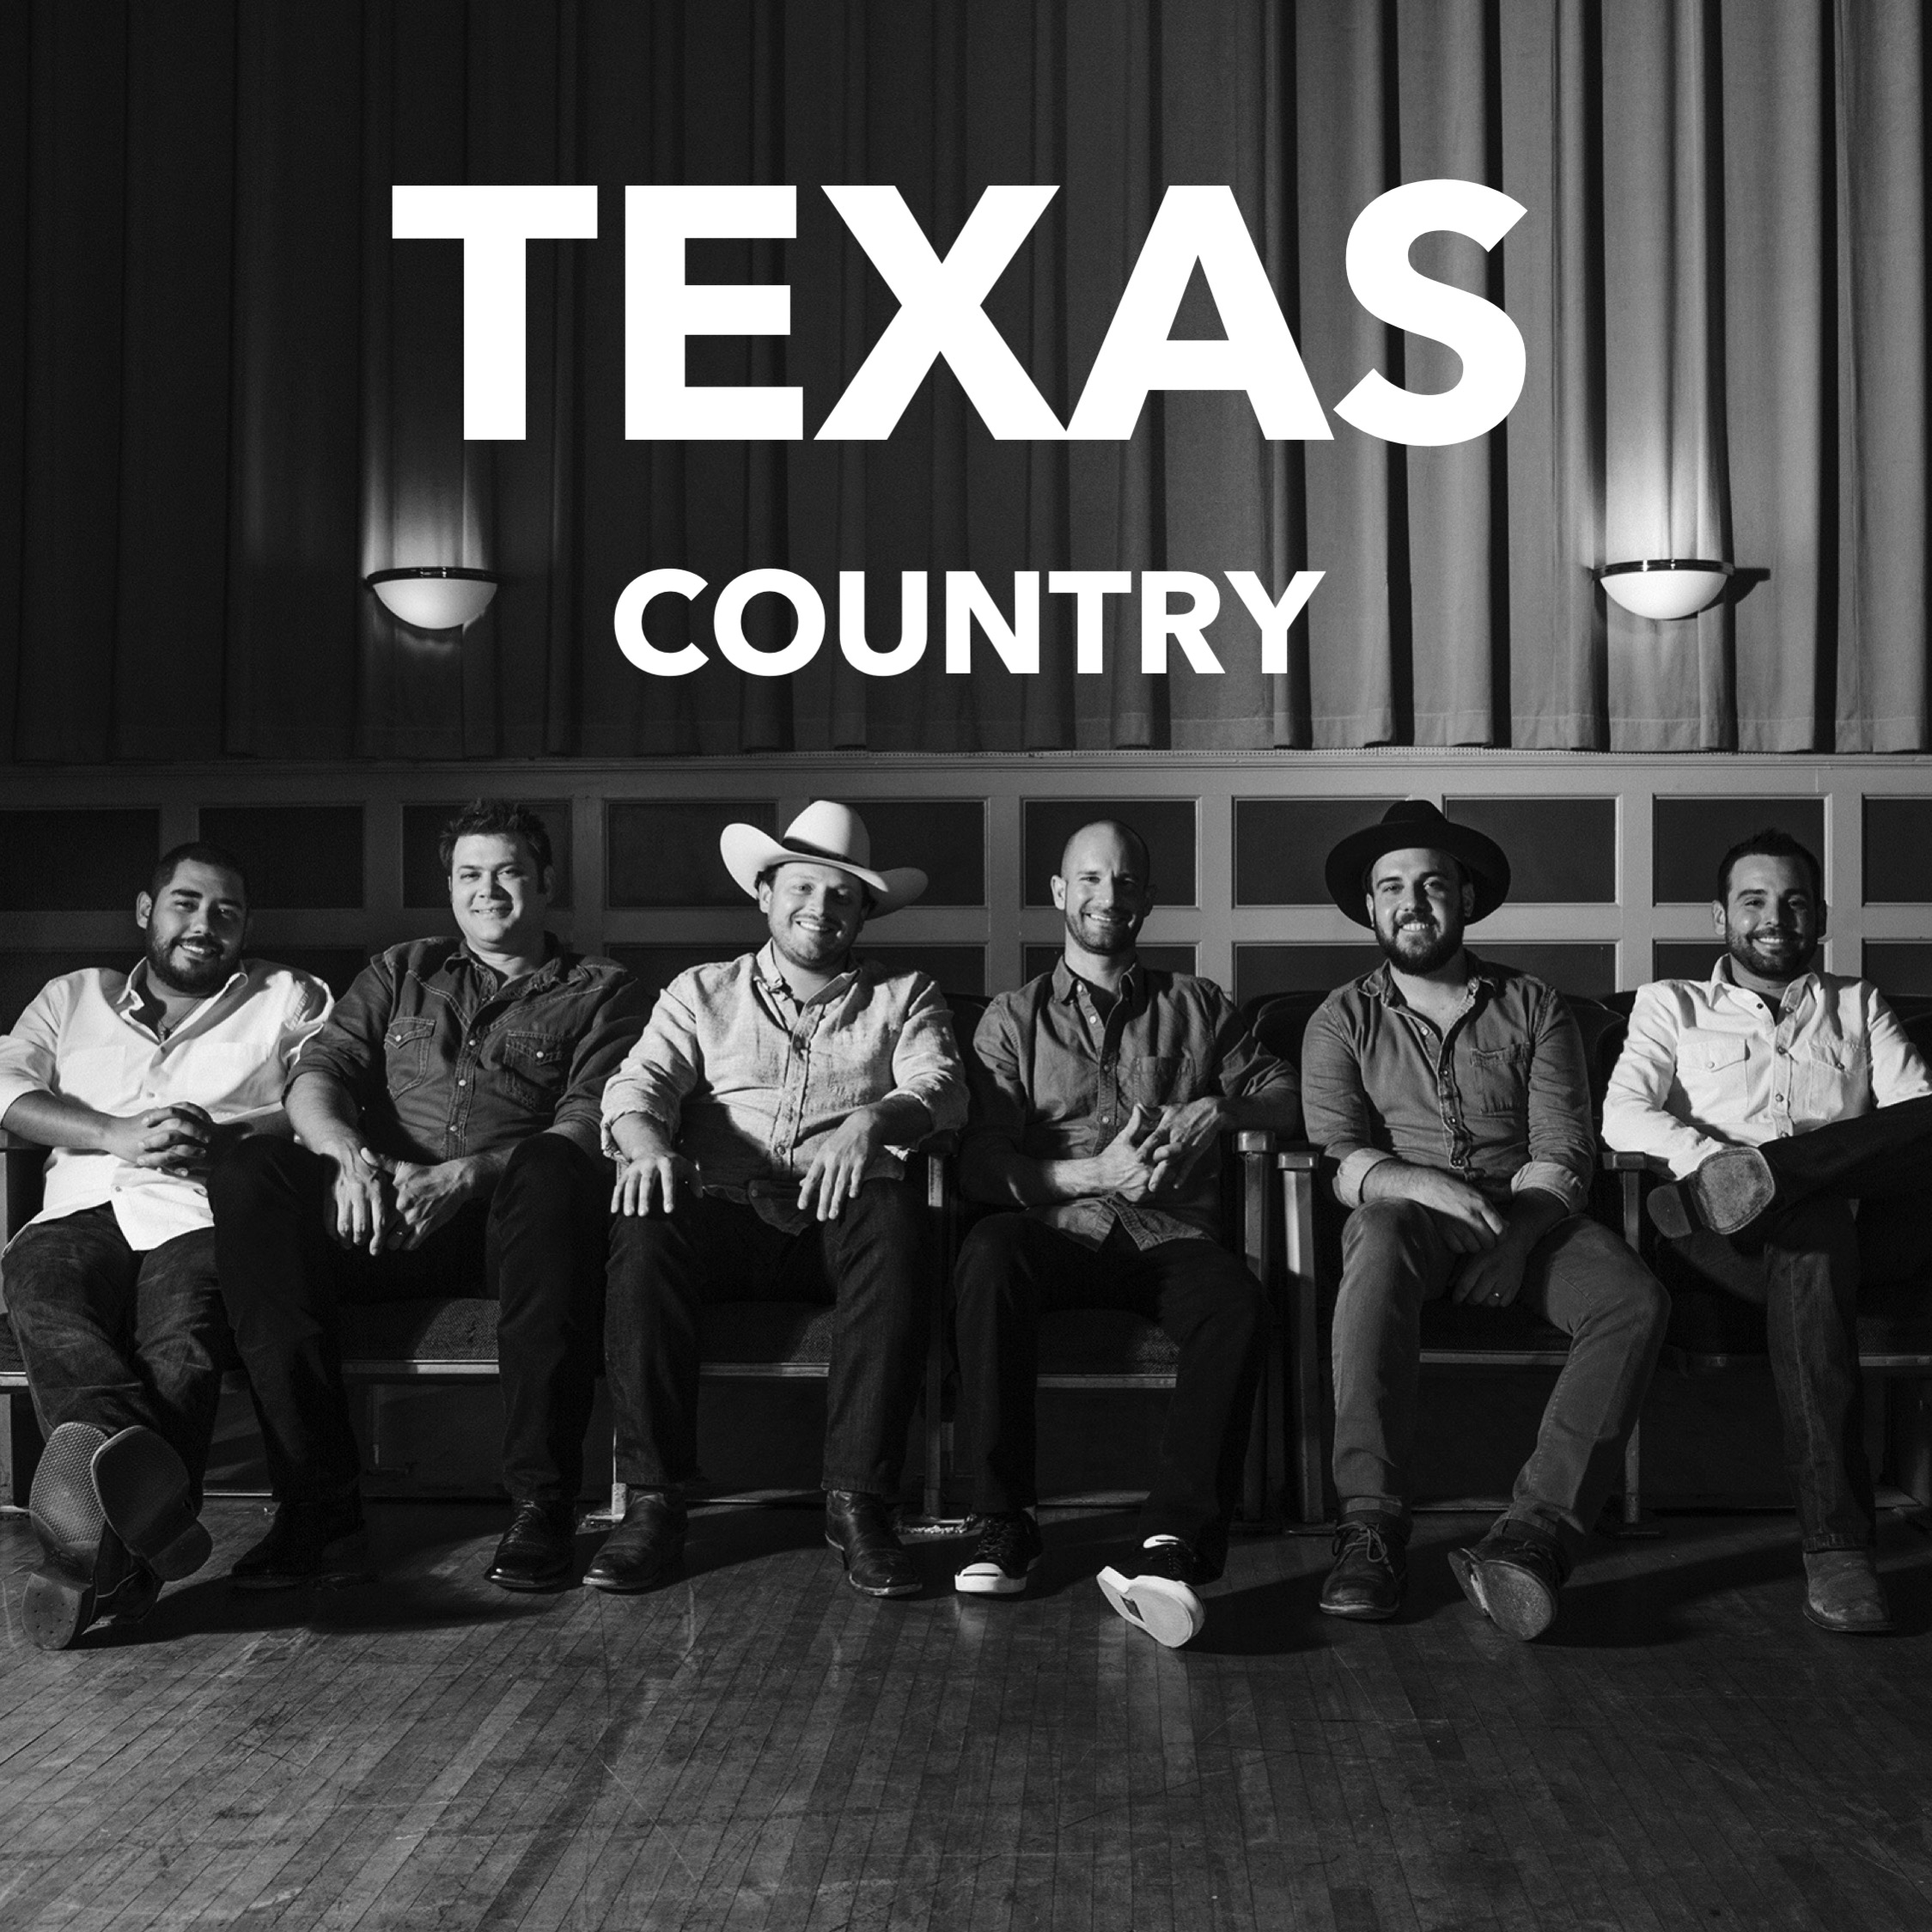 Real Texas Country